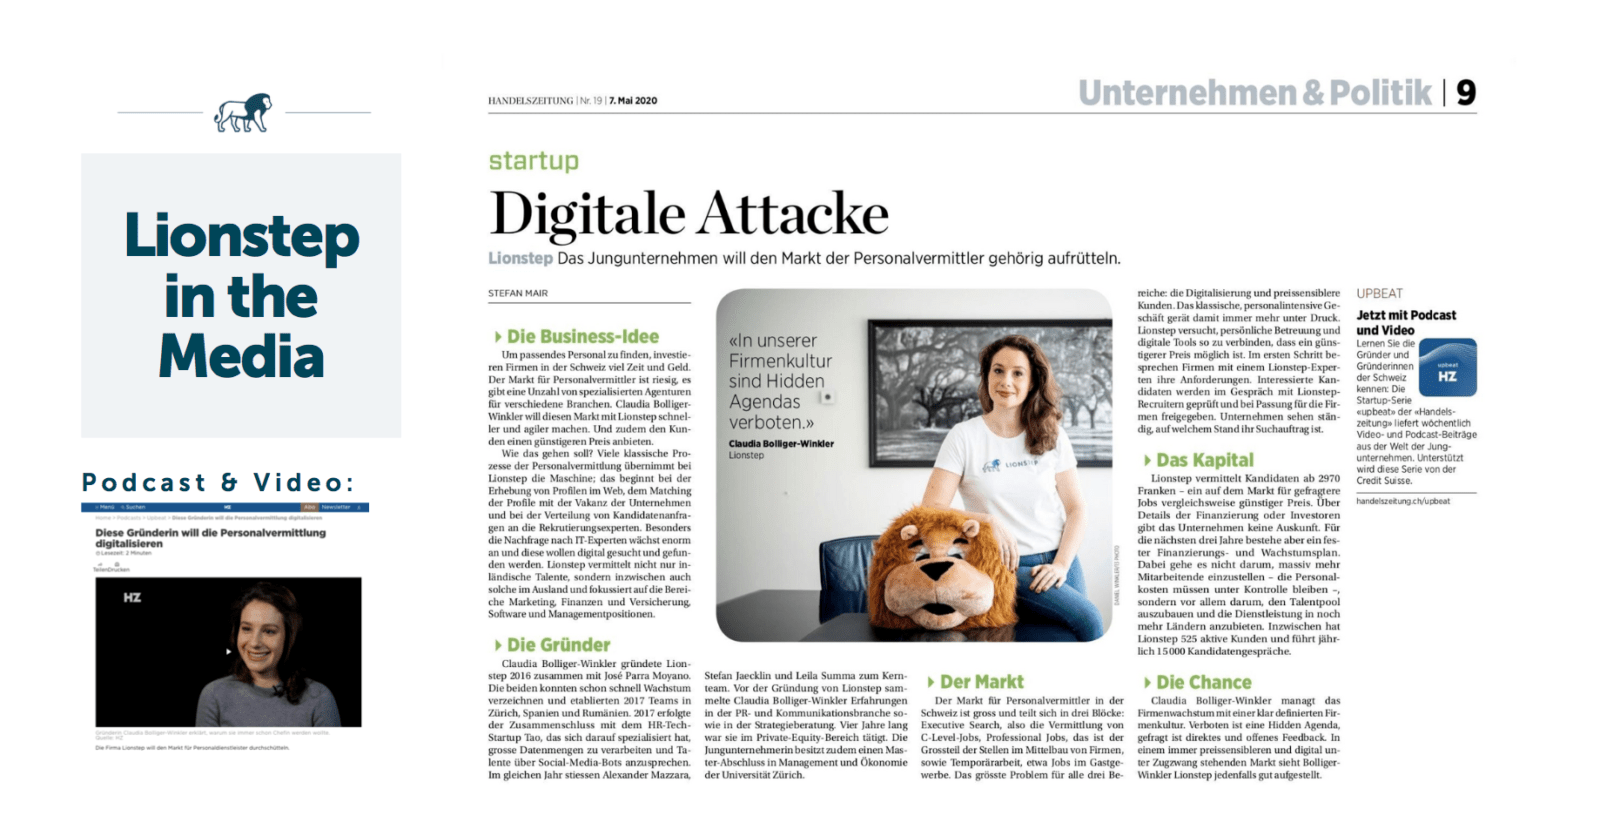 Lionstep in the media